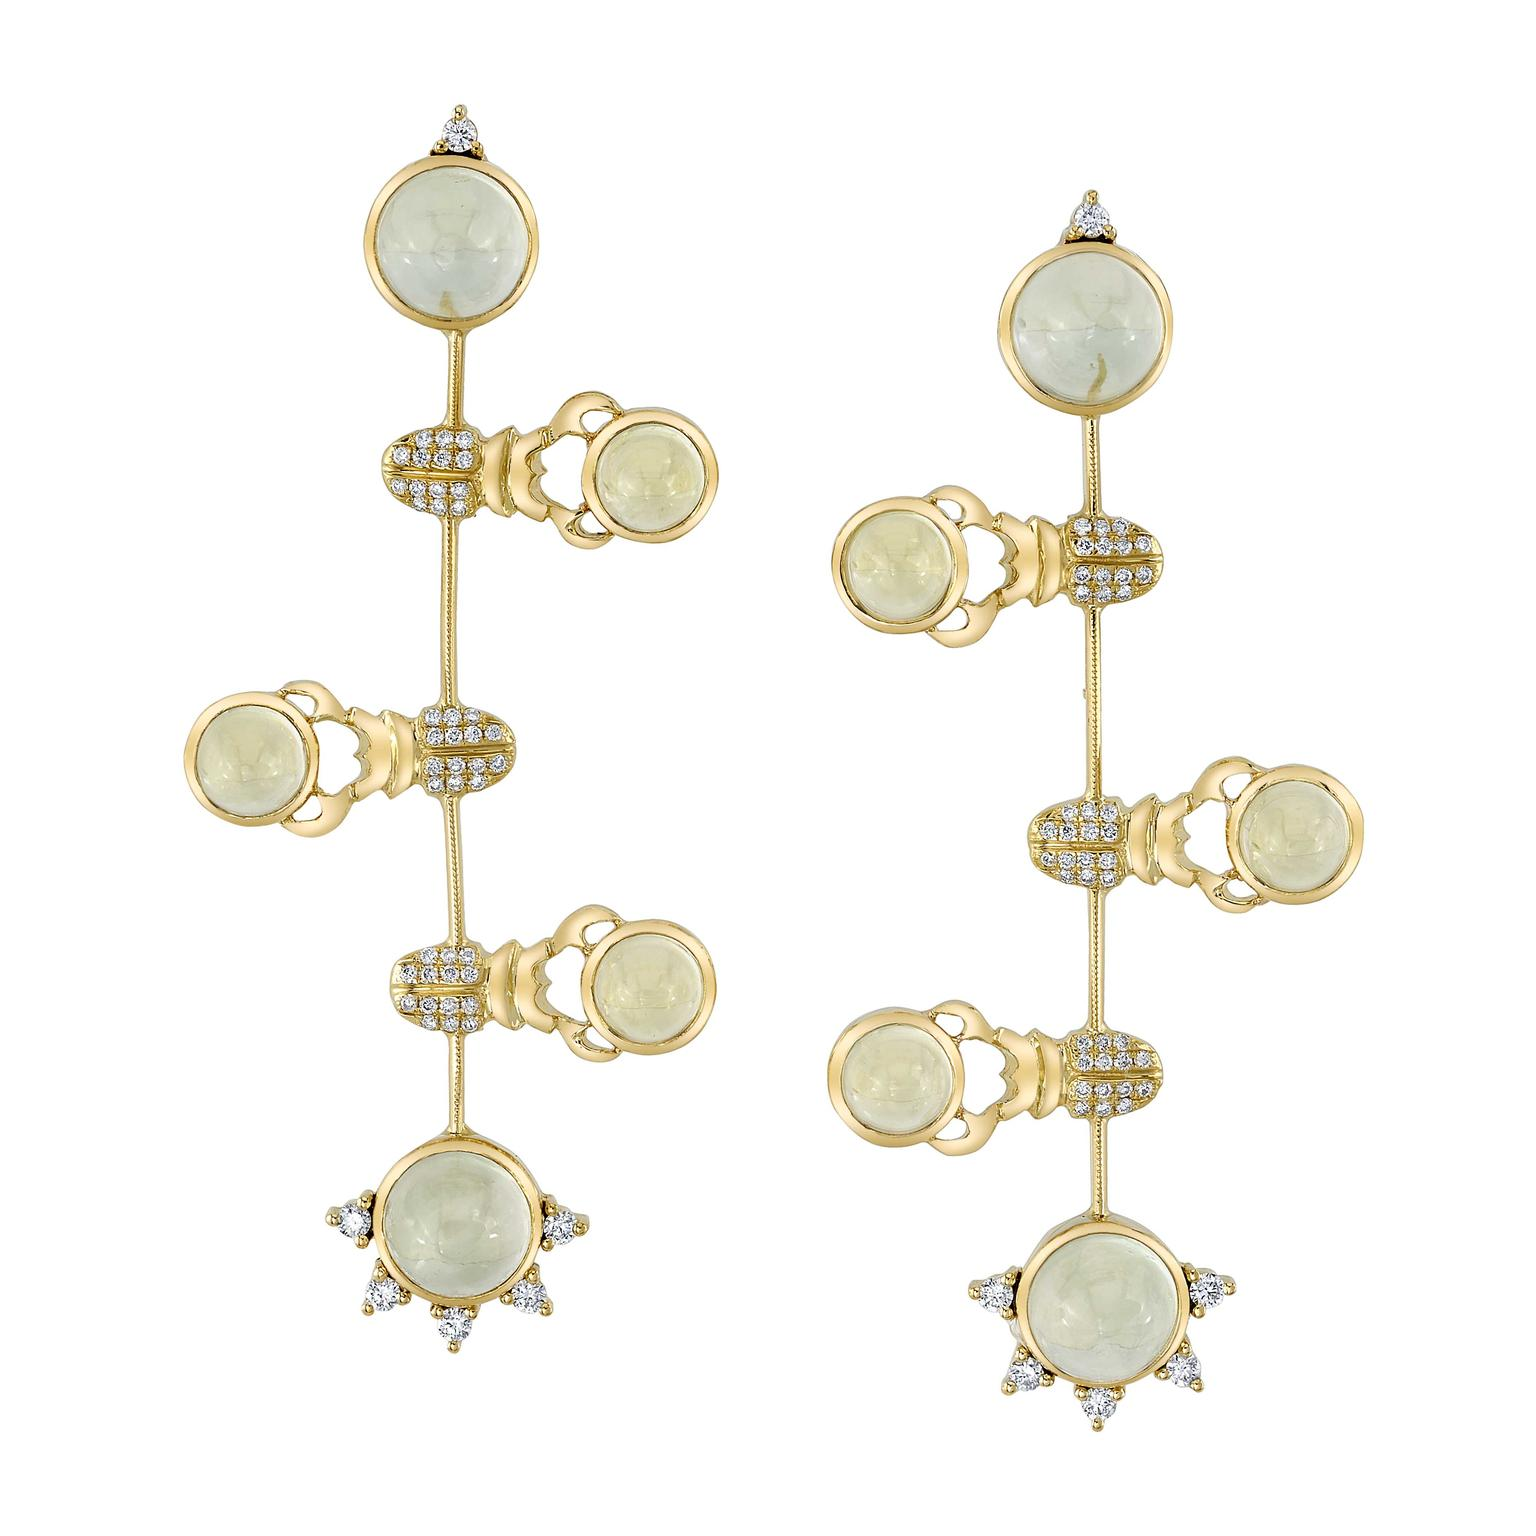 Daniela Villegas Alined earrings